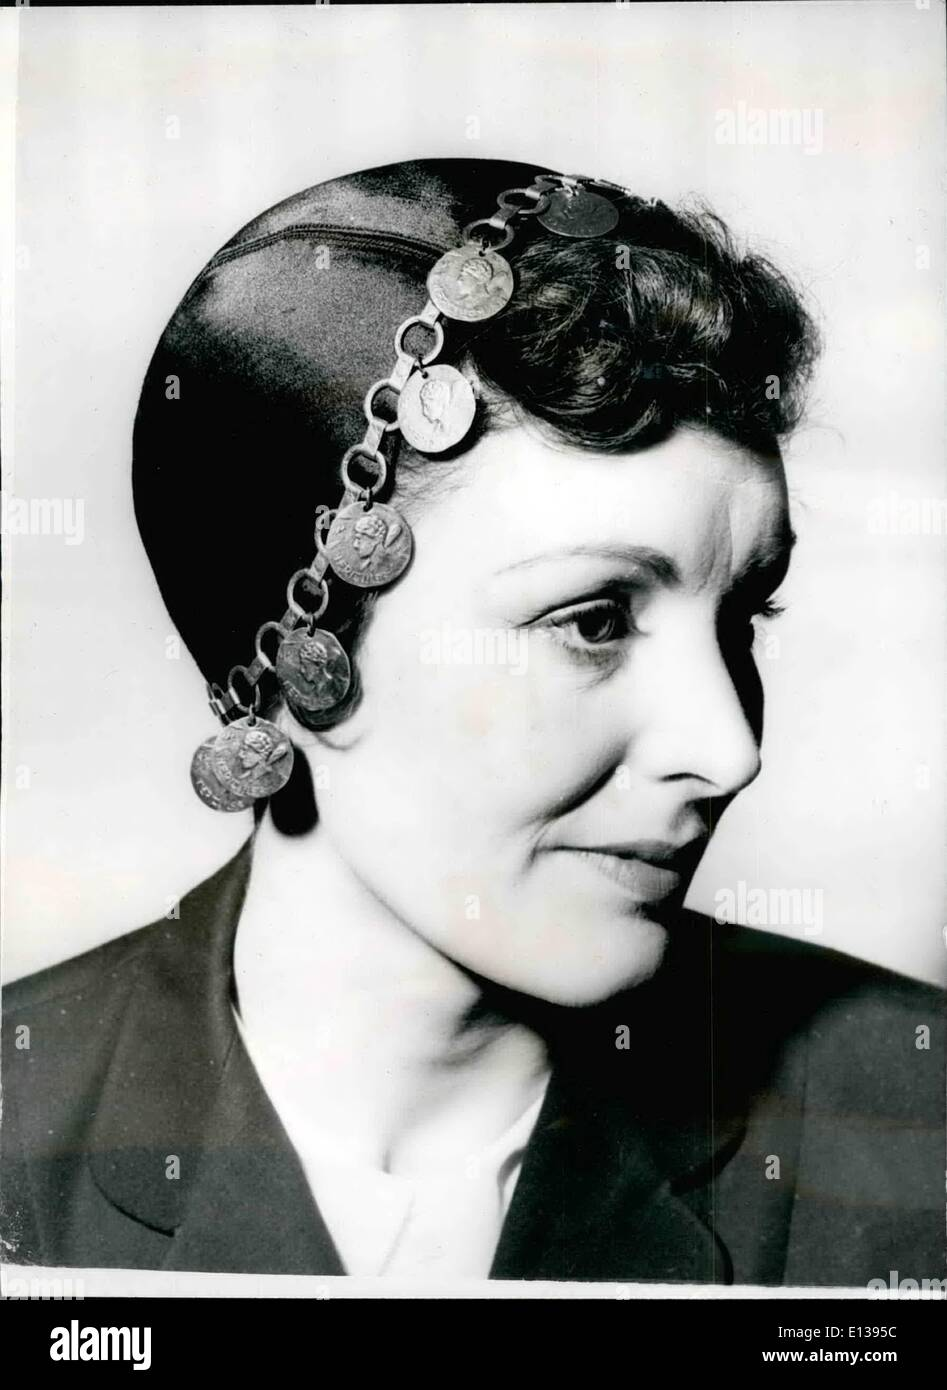 Feb. 29, 2012 - The latest in hat fashions. Juliet cap trimmed with gold coins. Keystone Photo Shows: The black satin Juliet cap, trimmed with gold coins round the edge, seen in the Simone Mirman Collection of new millinery. - Stock Image